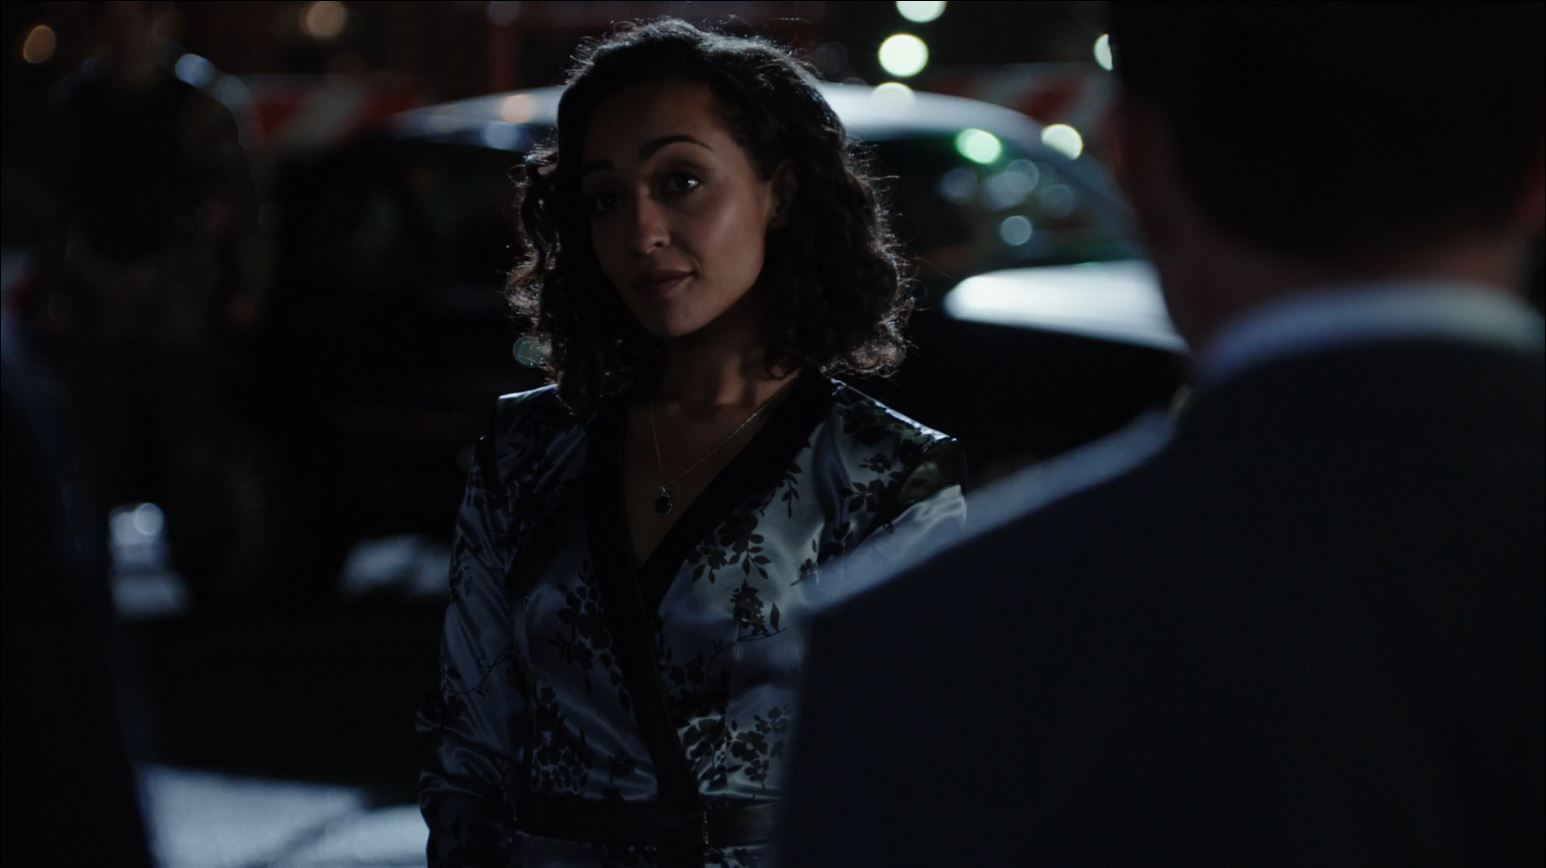 Agents of SHIELD - Raina - The woman in the flower dress